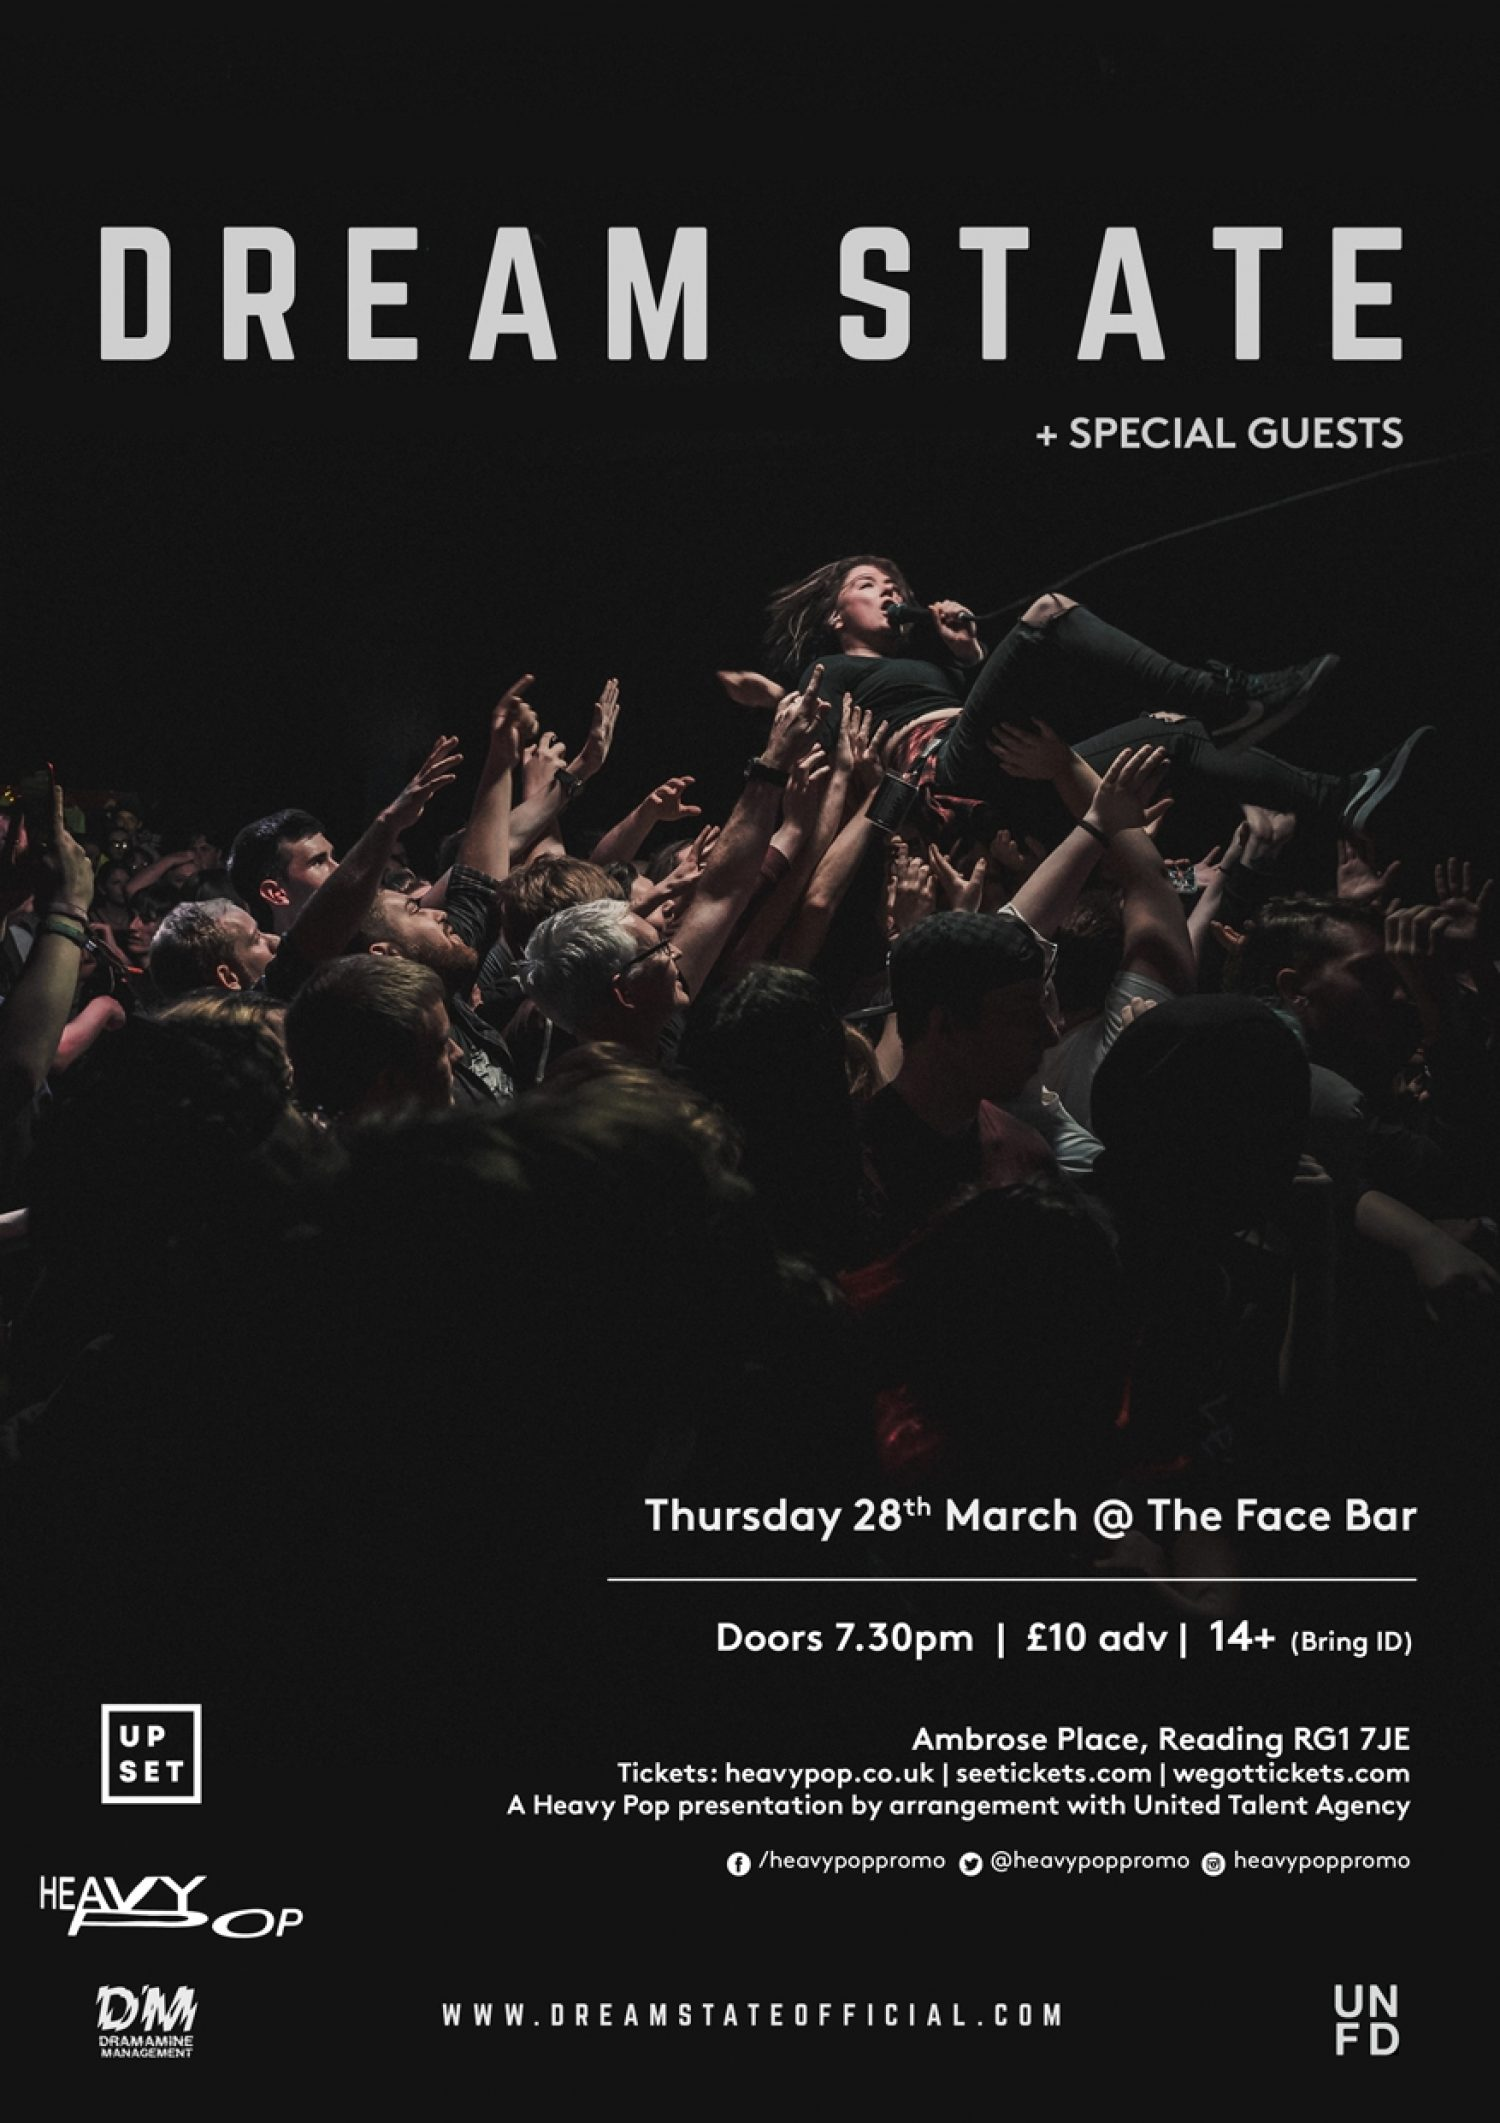 Dream State have announced their biggest ever UK headline tour